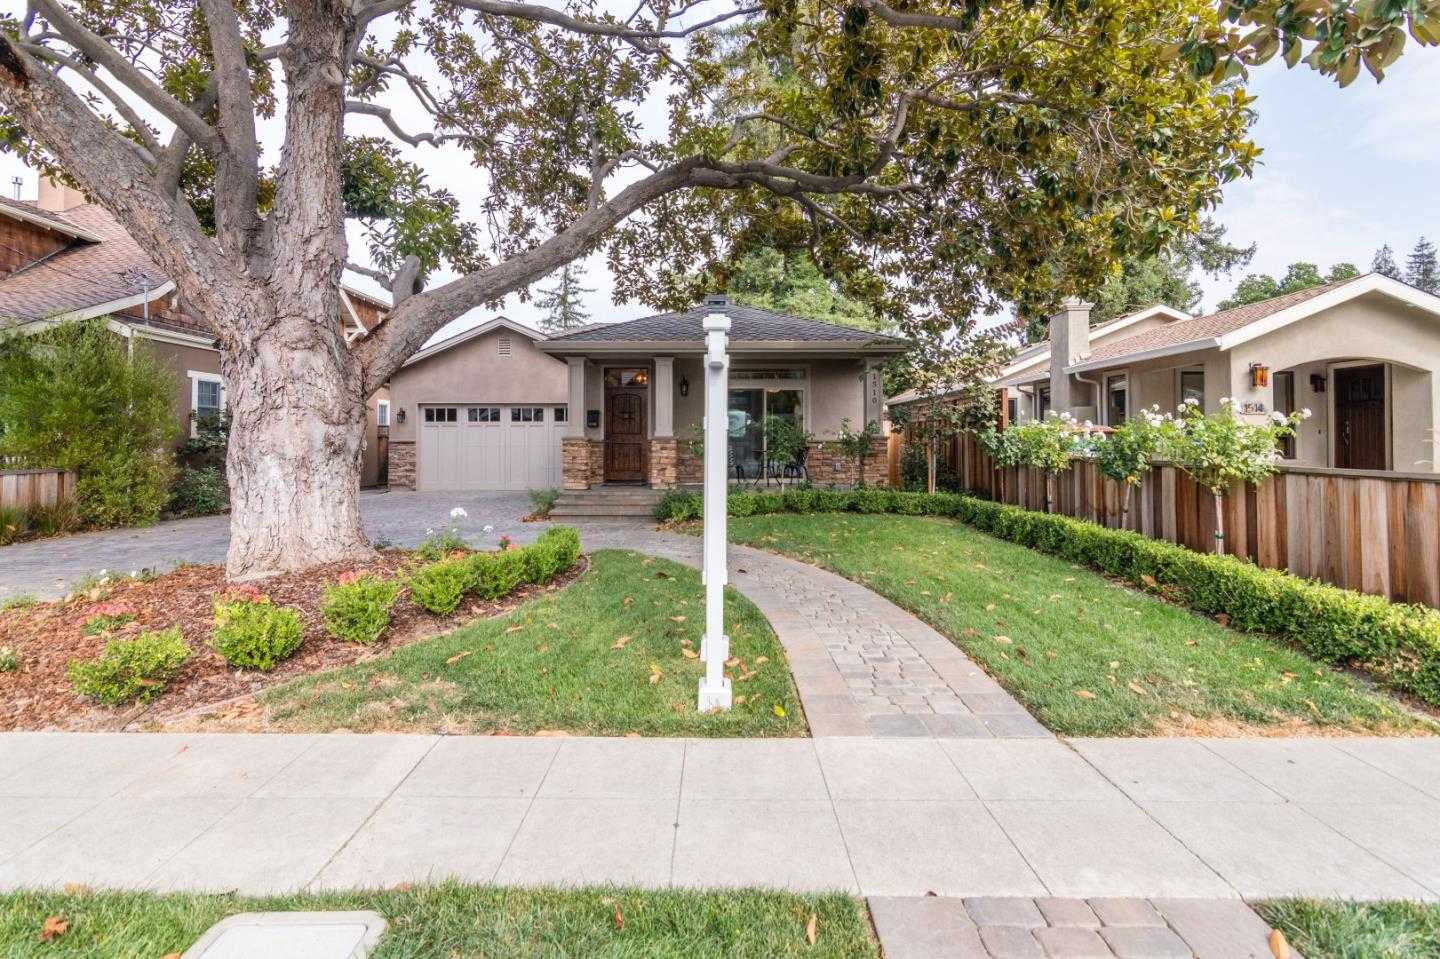 $2,398,000 - 4Br/4Ba -  for Sale in San Jose